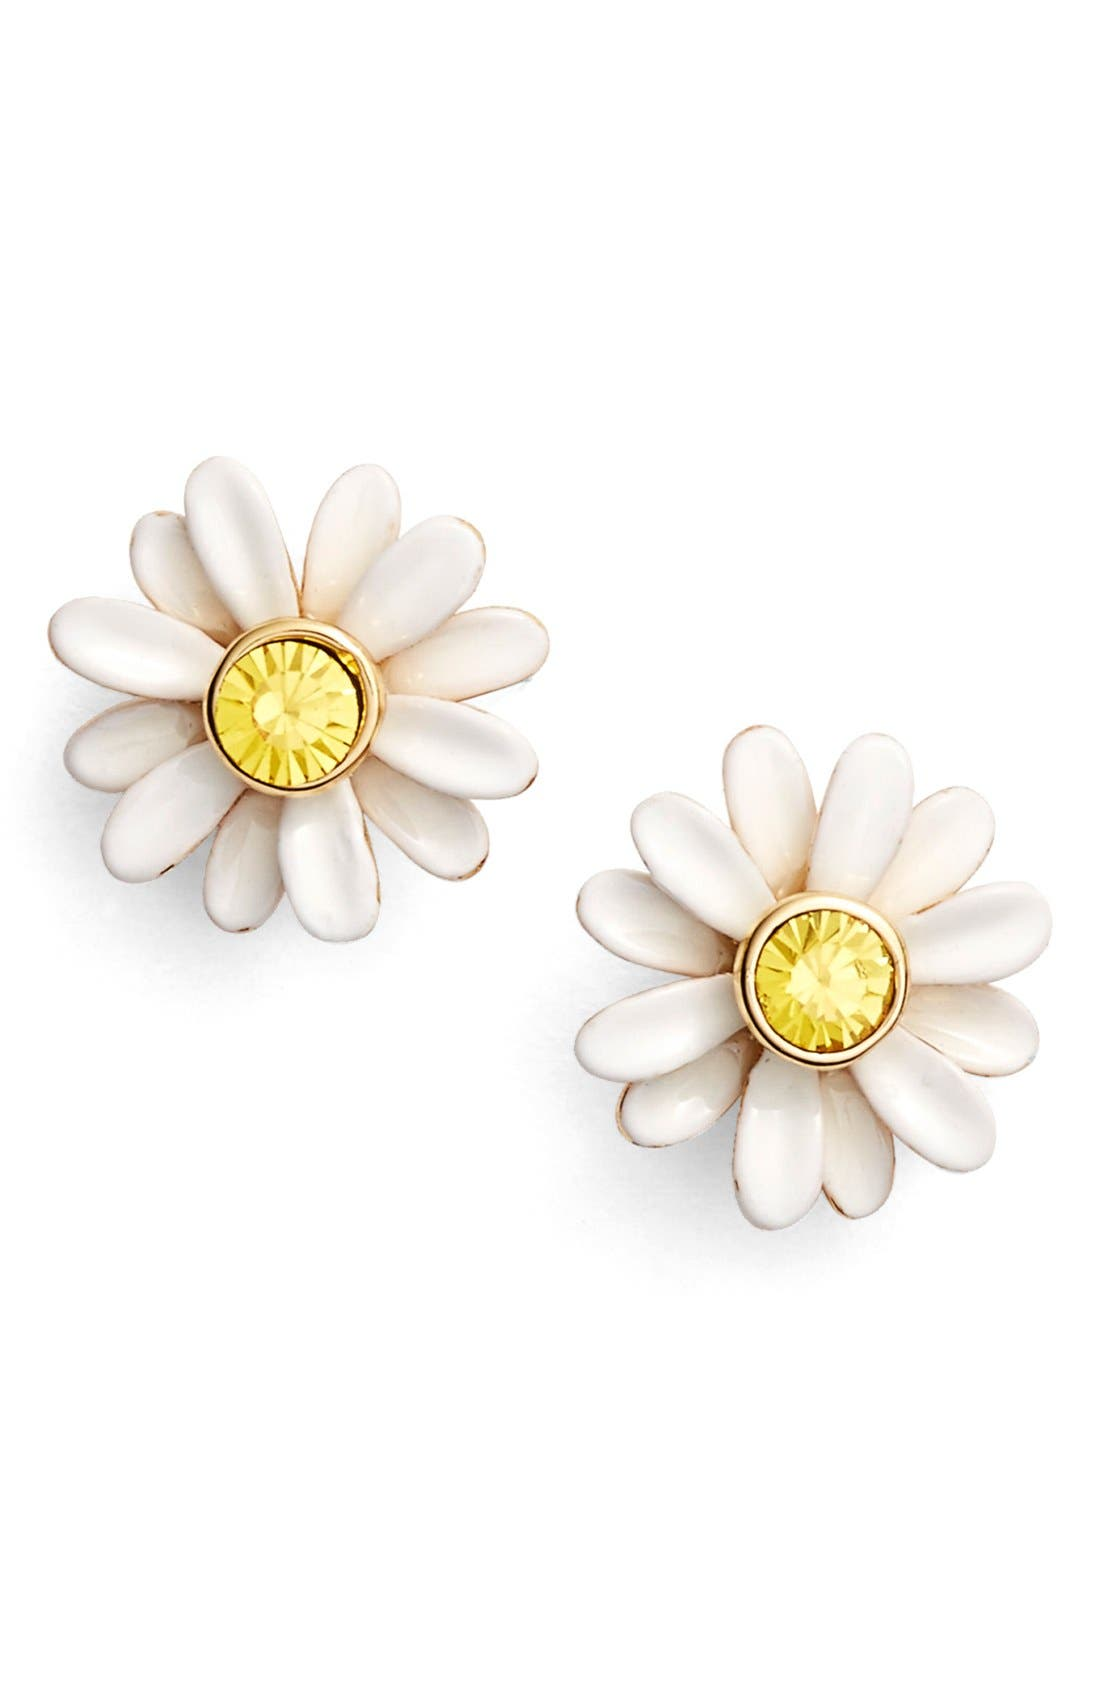 Alternate Image 1 Selected - kate spade new york 'dazzling daisies' stud earrings